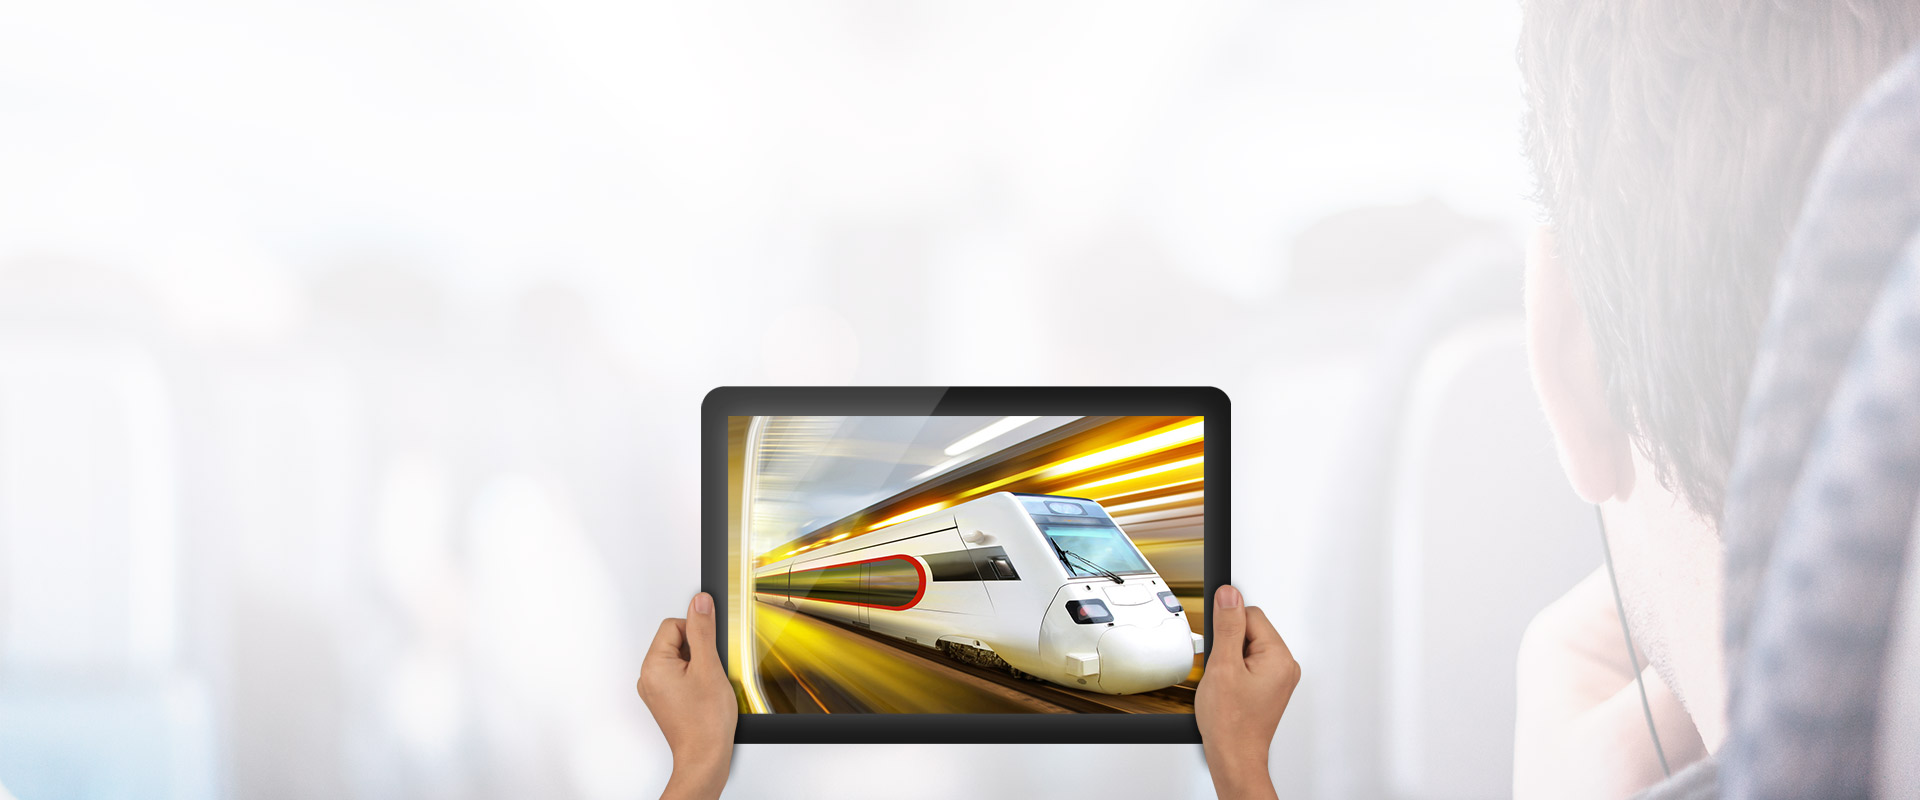 no wait/no off-line, Experience high speed train like surfing speed